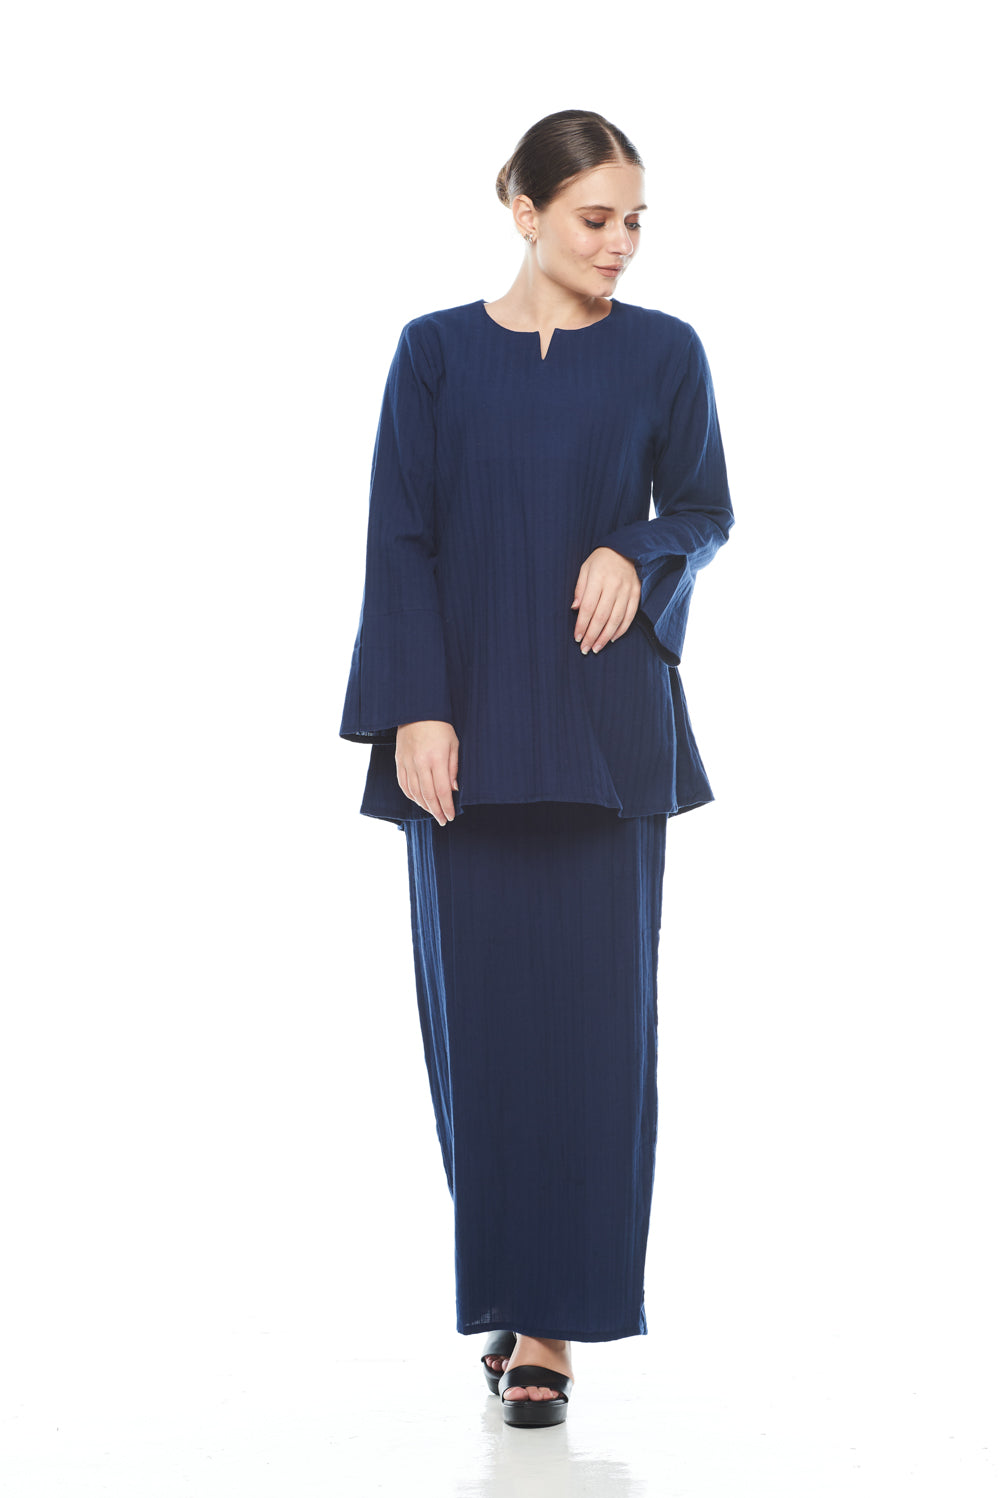 Saila Top in Dark Blue